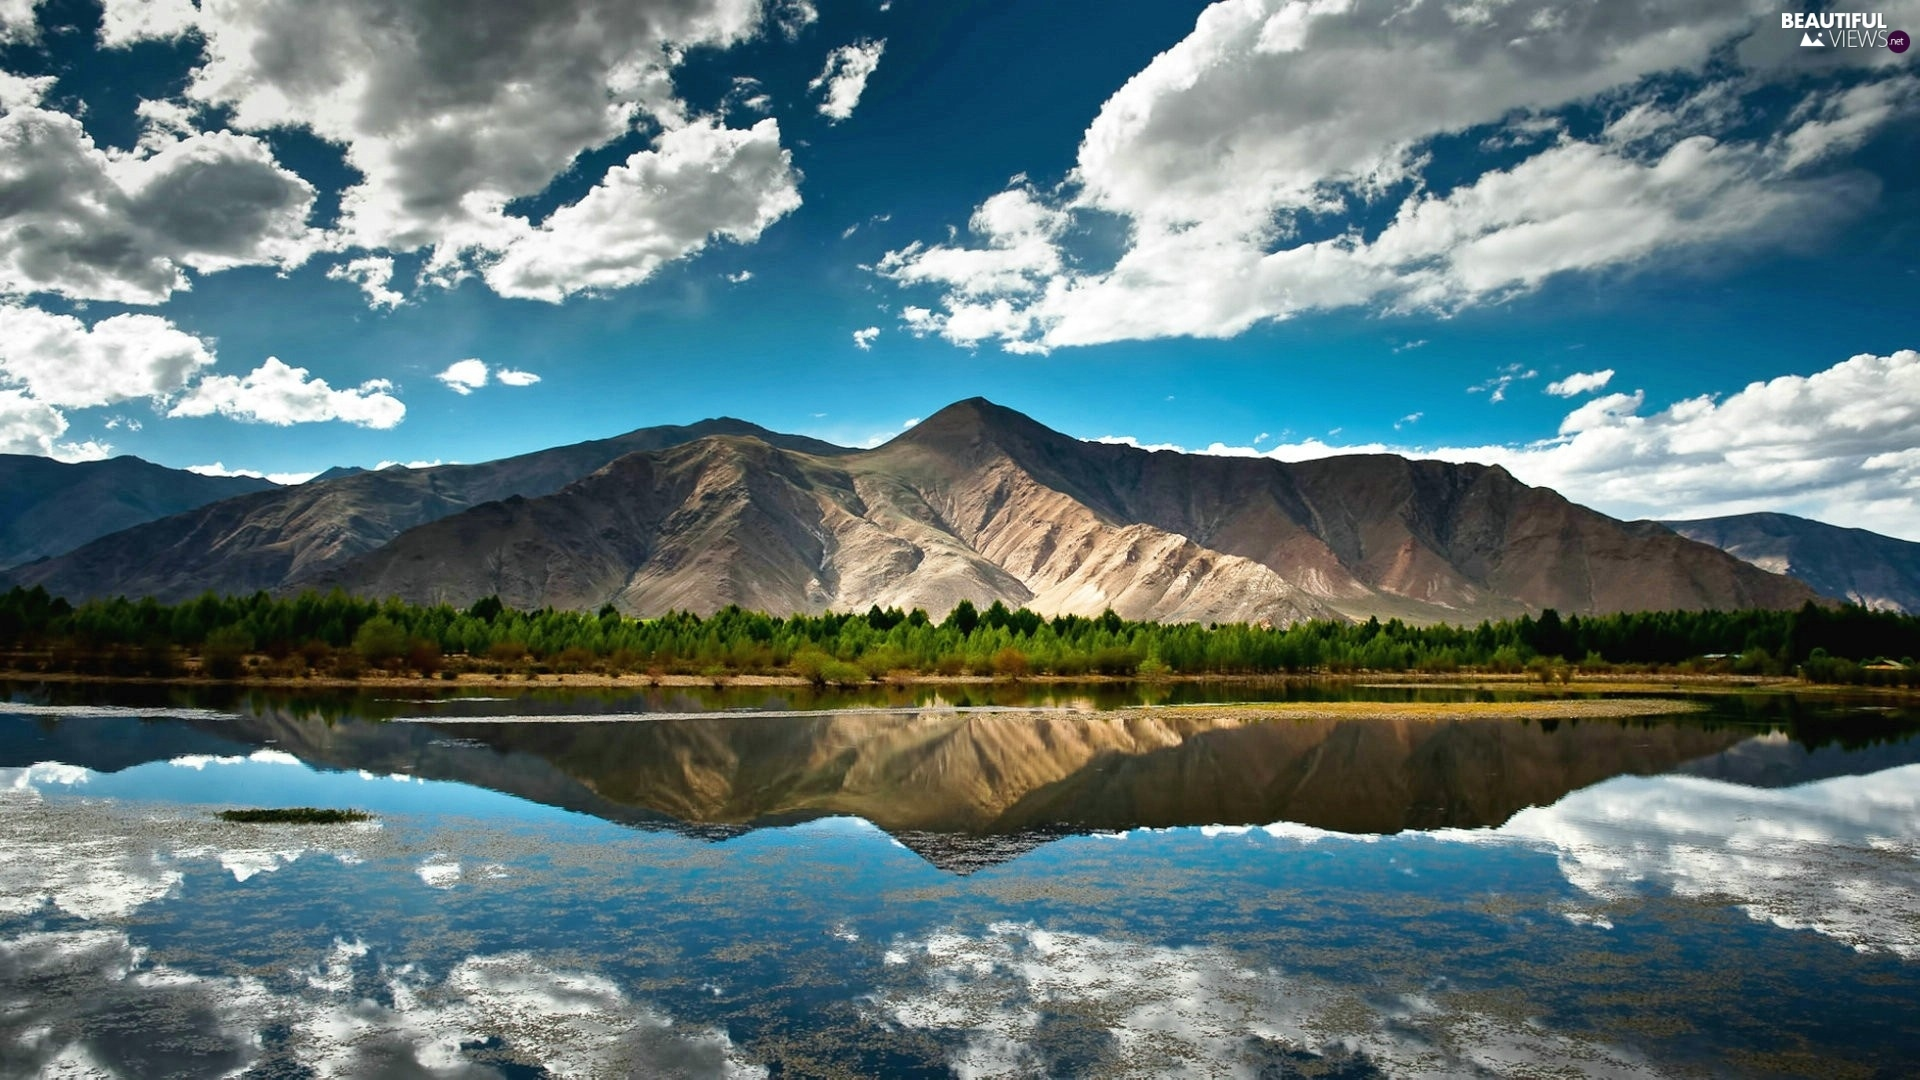 River, clouds, reflection, Mountains